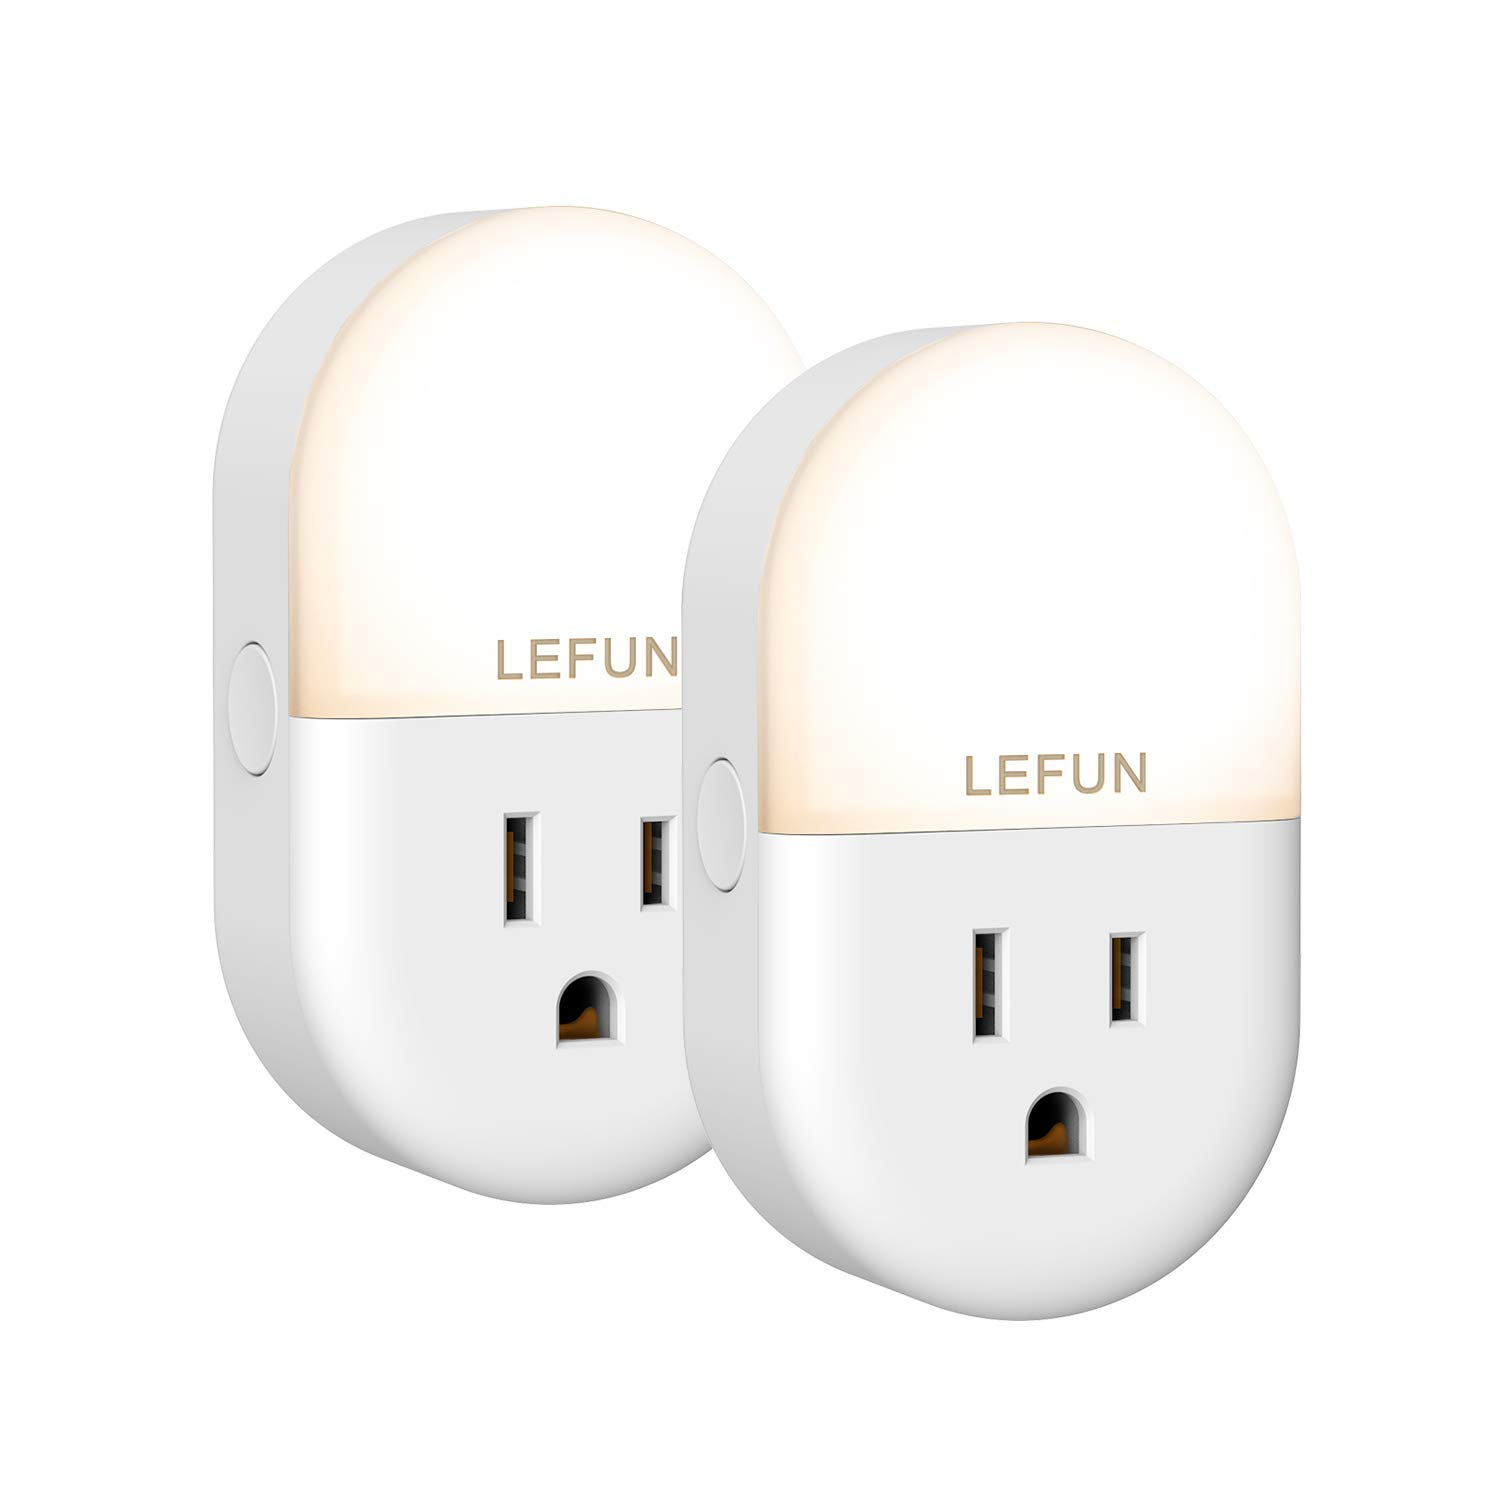 Lefun Smart Plug WiFi Outlets Night Light with Timer Remote Individual Control, Work with Alexa/Google Home/Ifttt